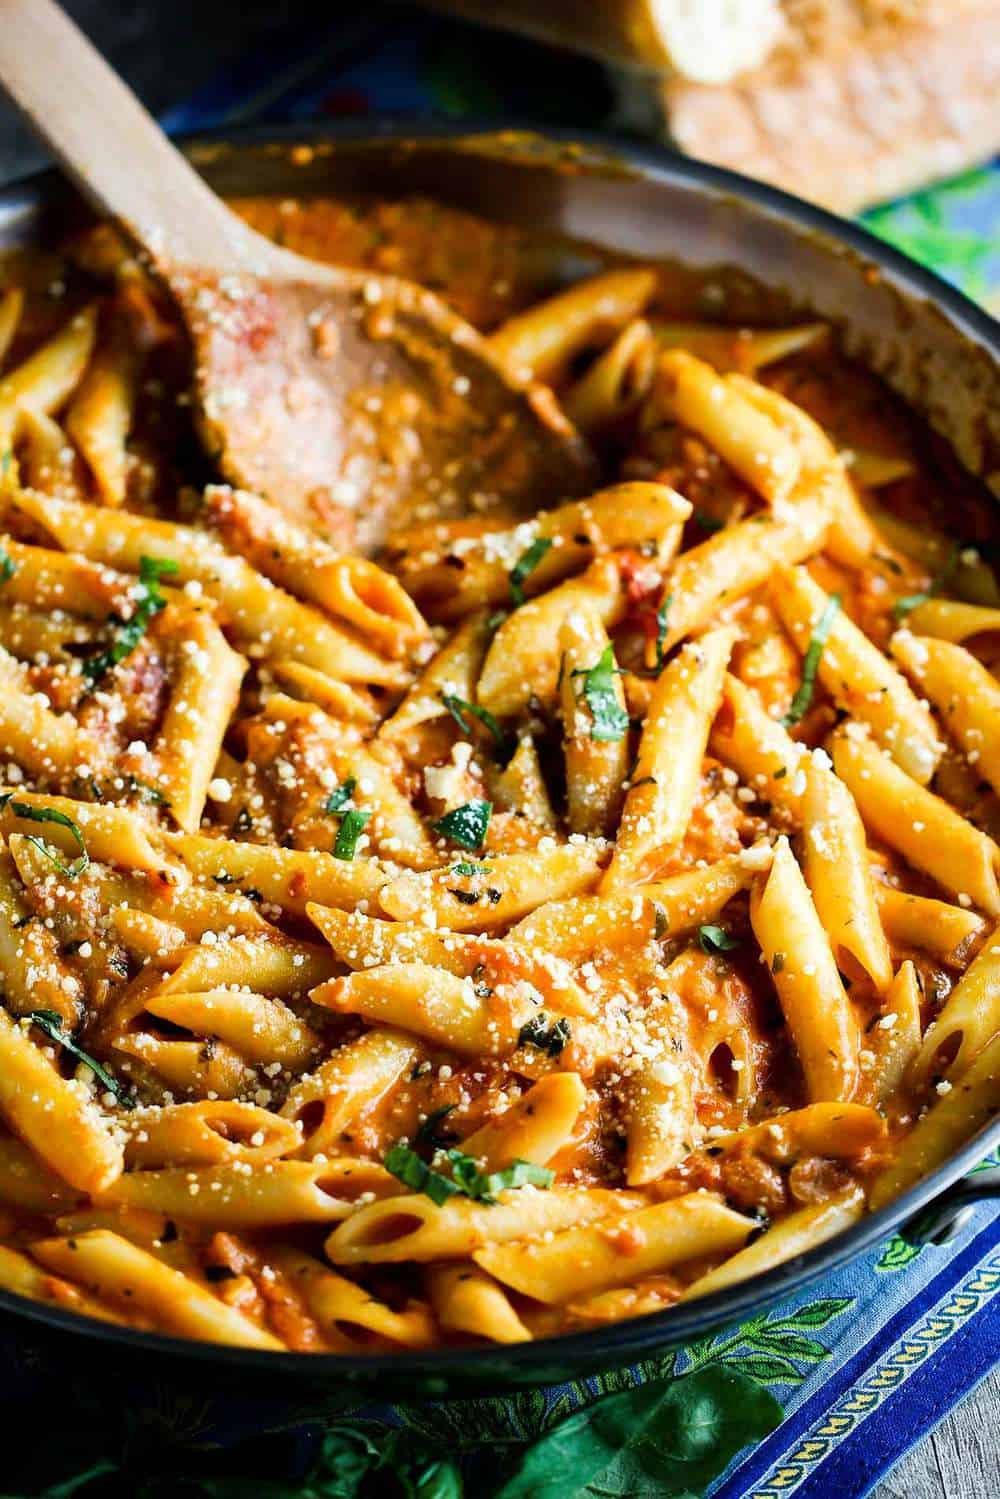 Classic Penne alla Vodka recipe